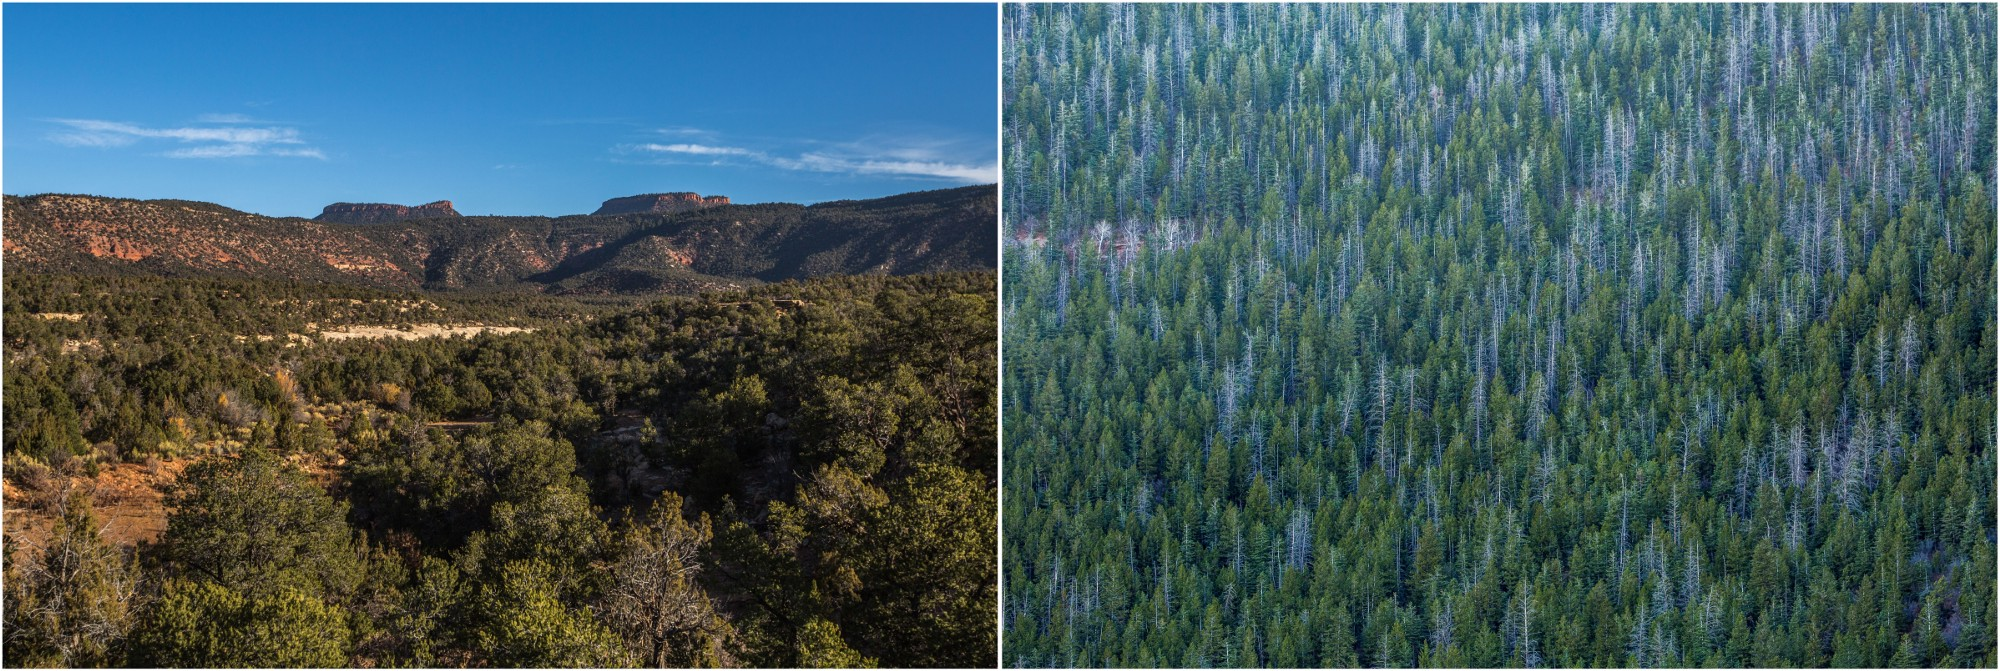 - Left: The Bears Ears buttes in the distance. They are believed to be a shrine that protects the Navajo/Diné. Right: The heights of the mountains in the Manti-La Sal National Forest give way to pine forests and aspen groves.